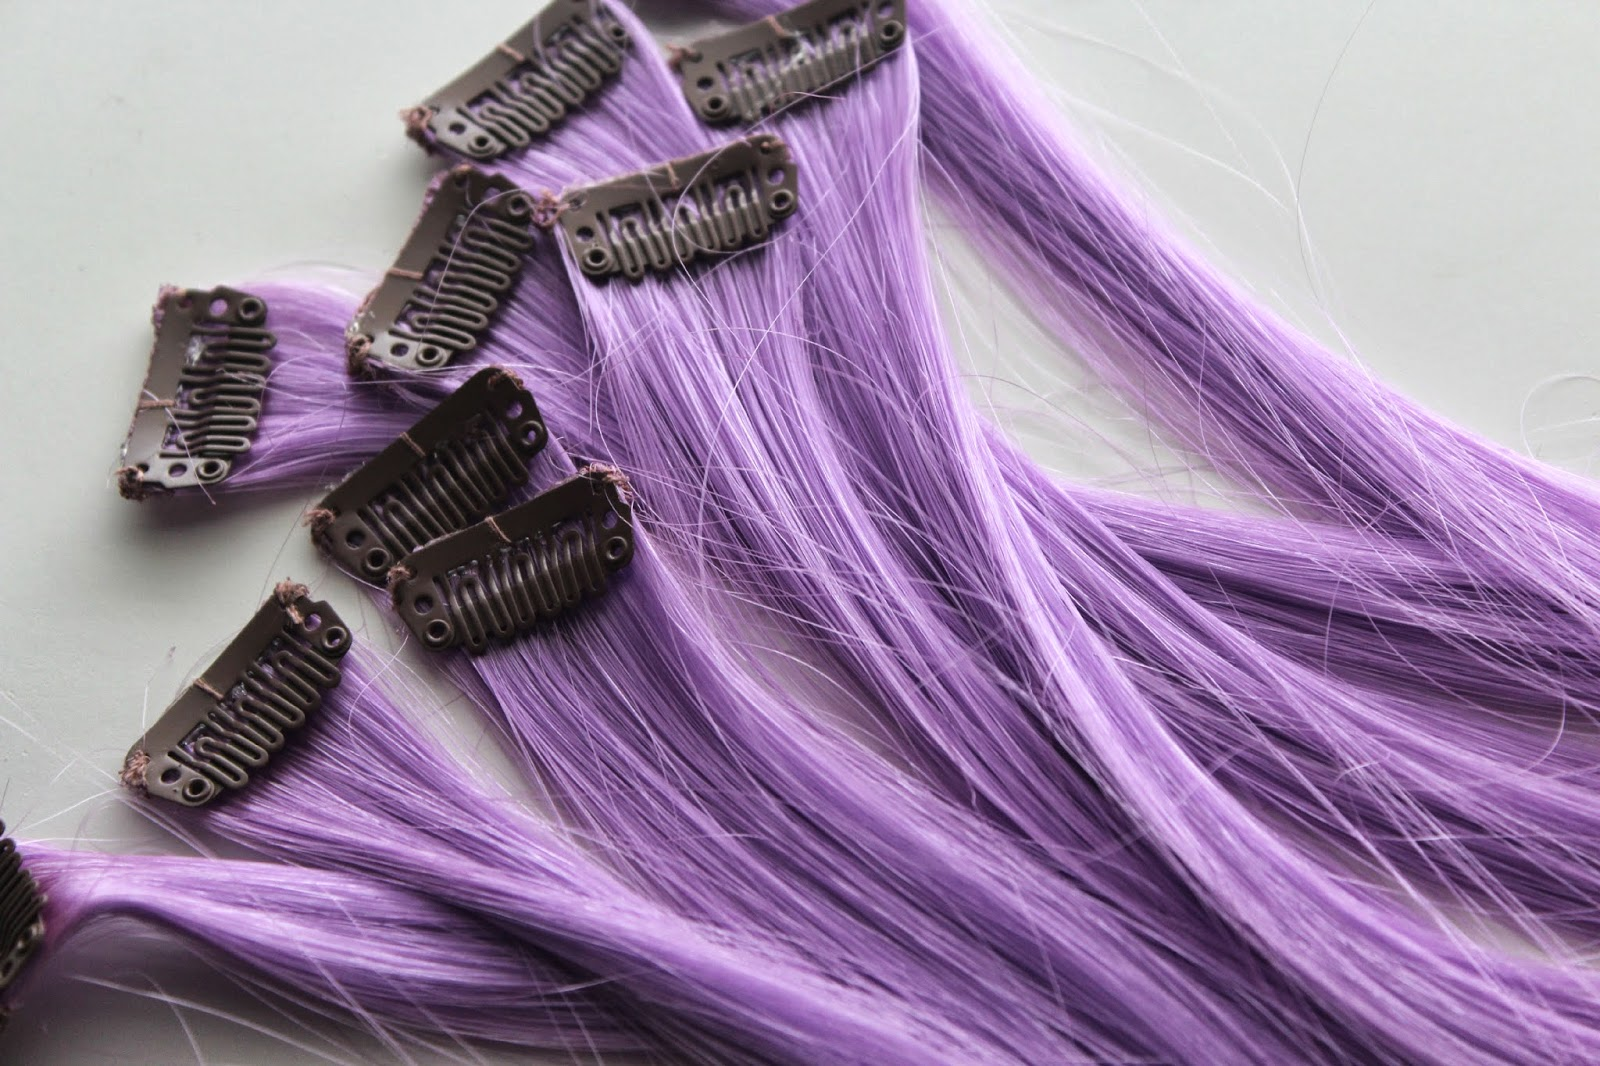 Wonderland Wigs Purple Hair Extensions Review Beauty And The Chic